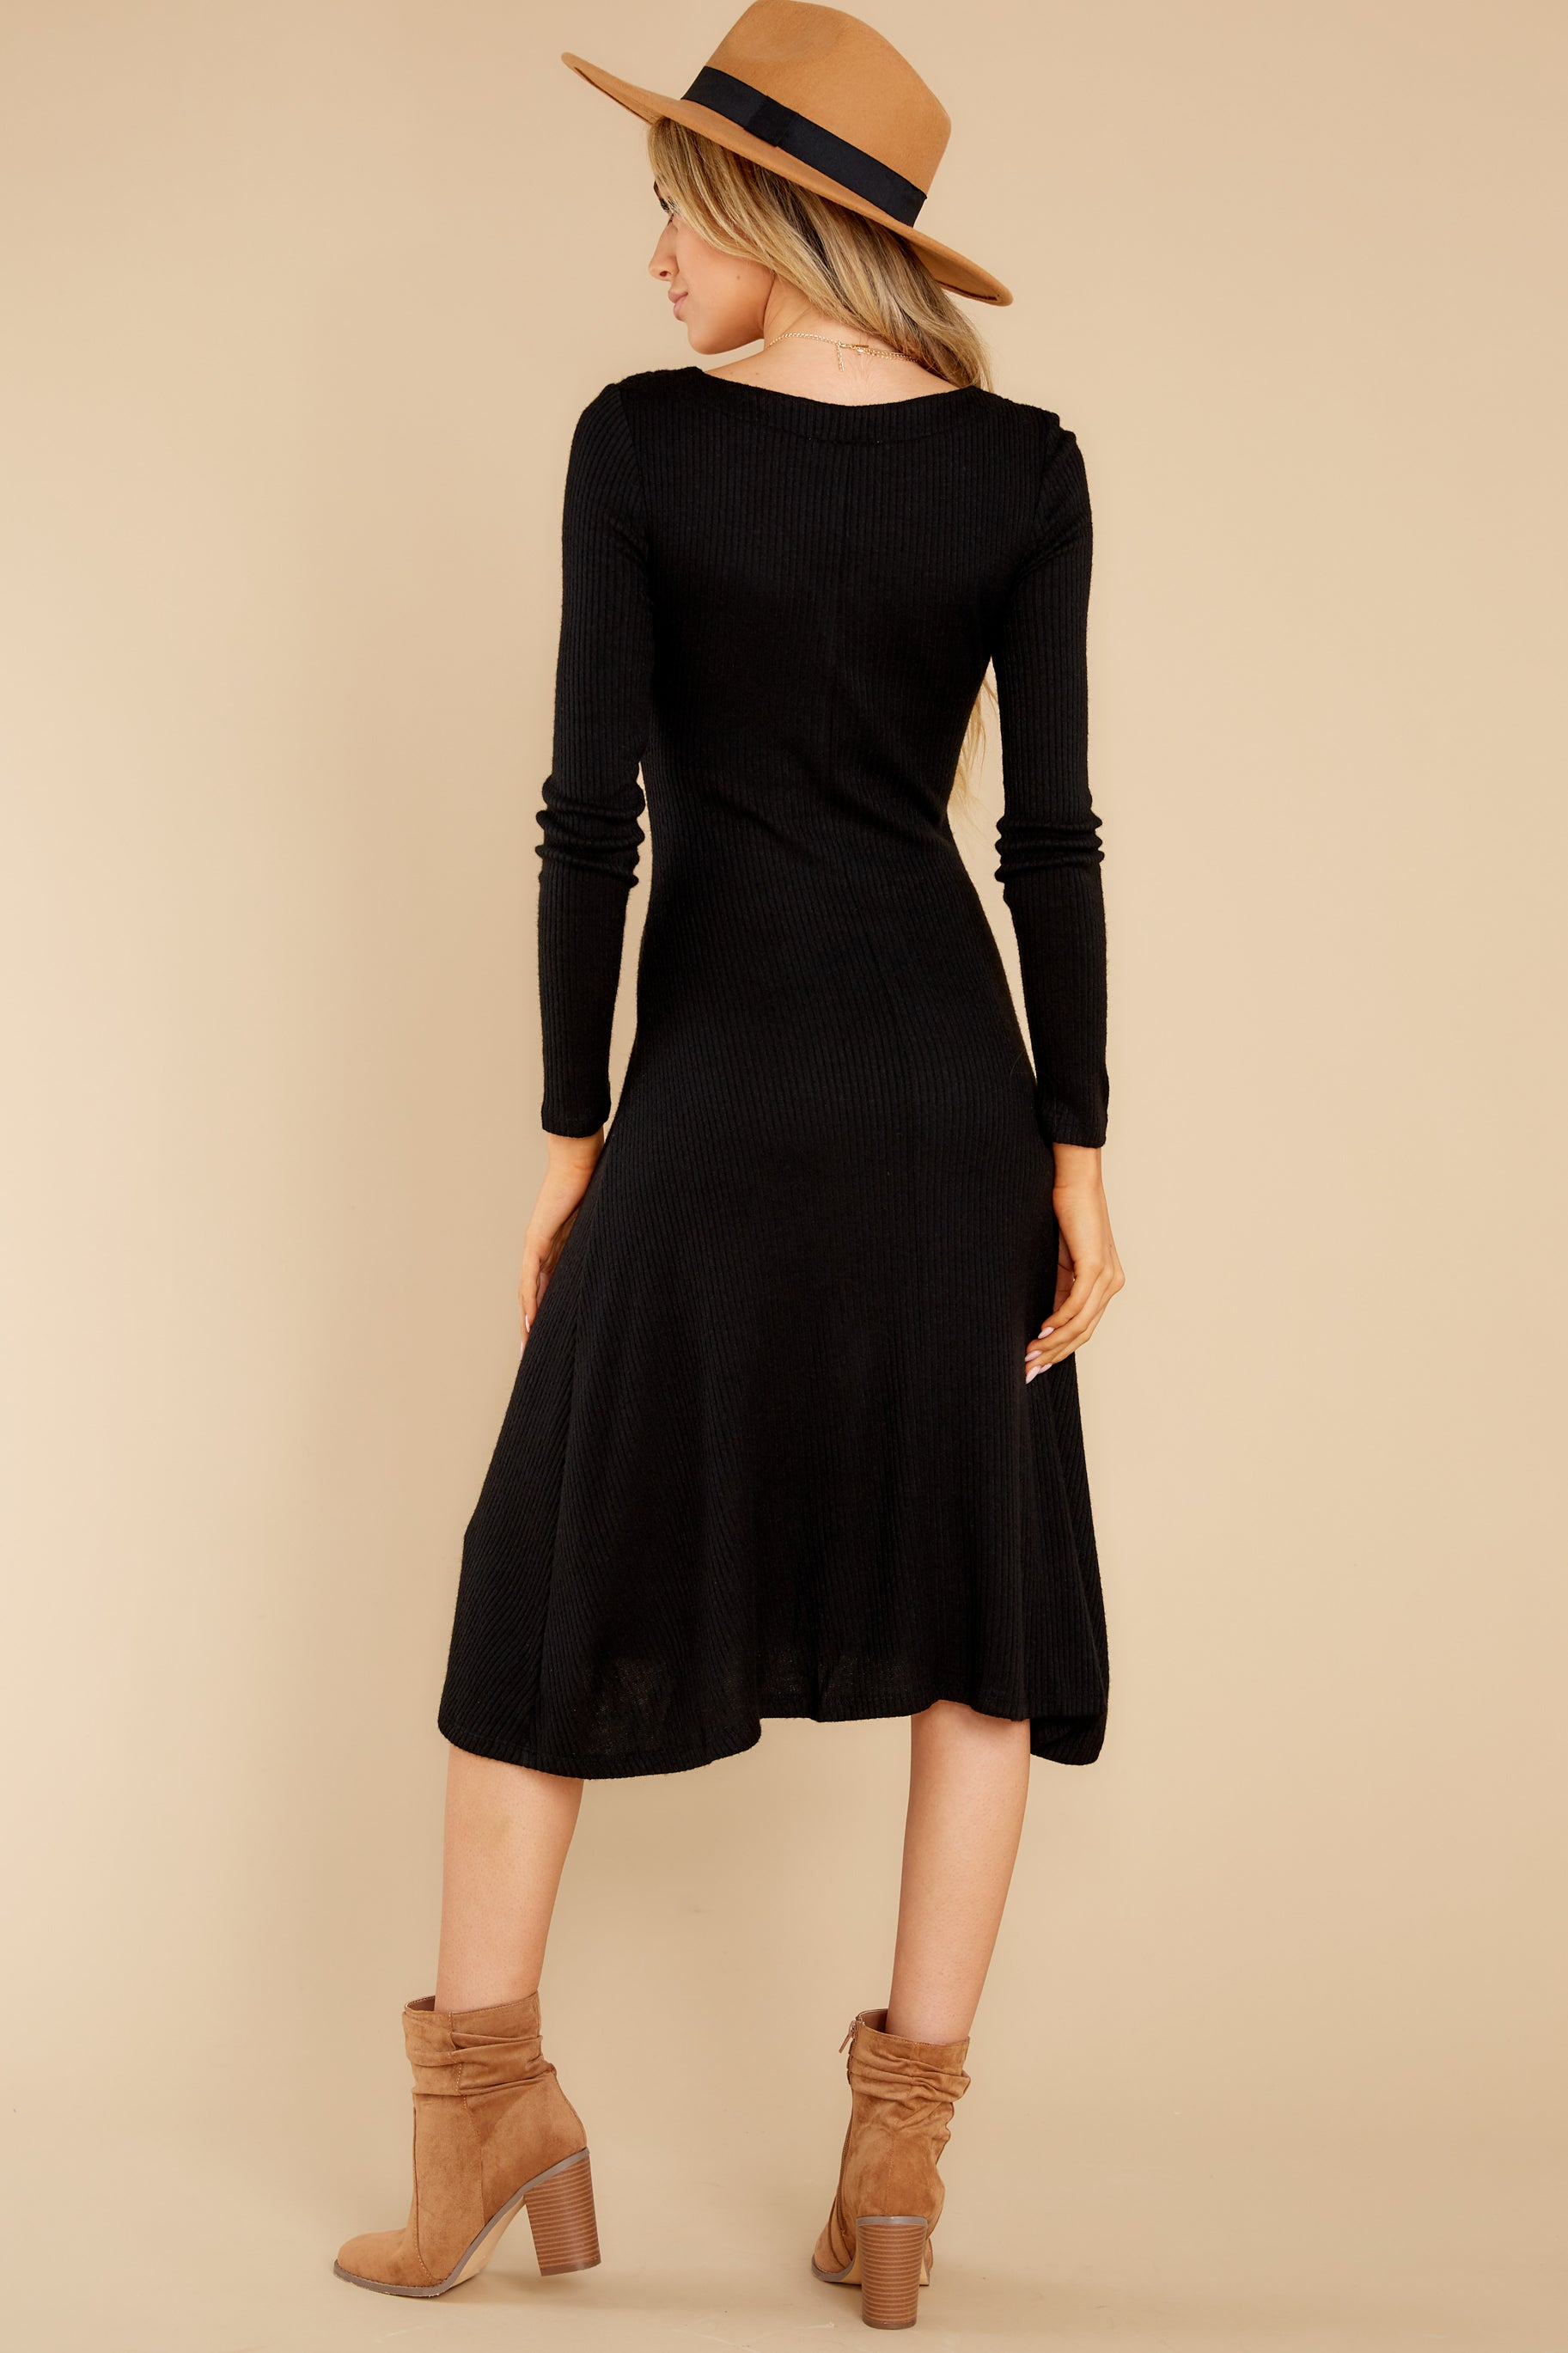 8 Keep It Uptown Black Knit Midi Dress at reddress.com